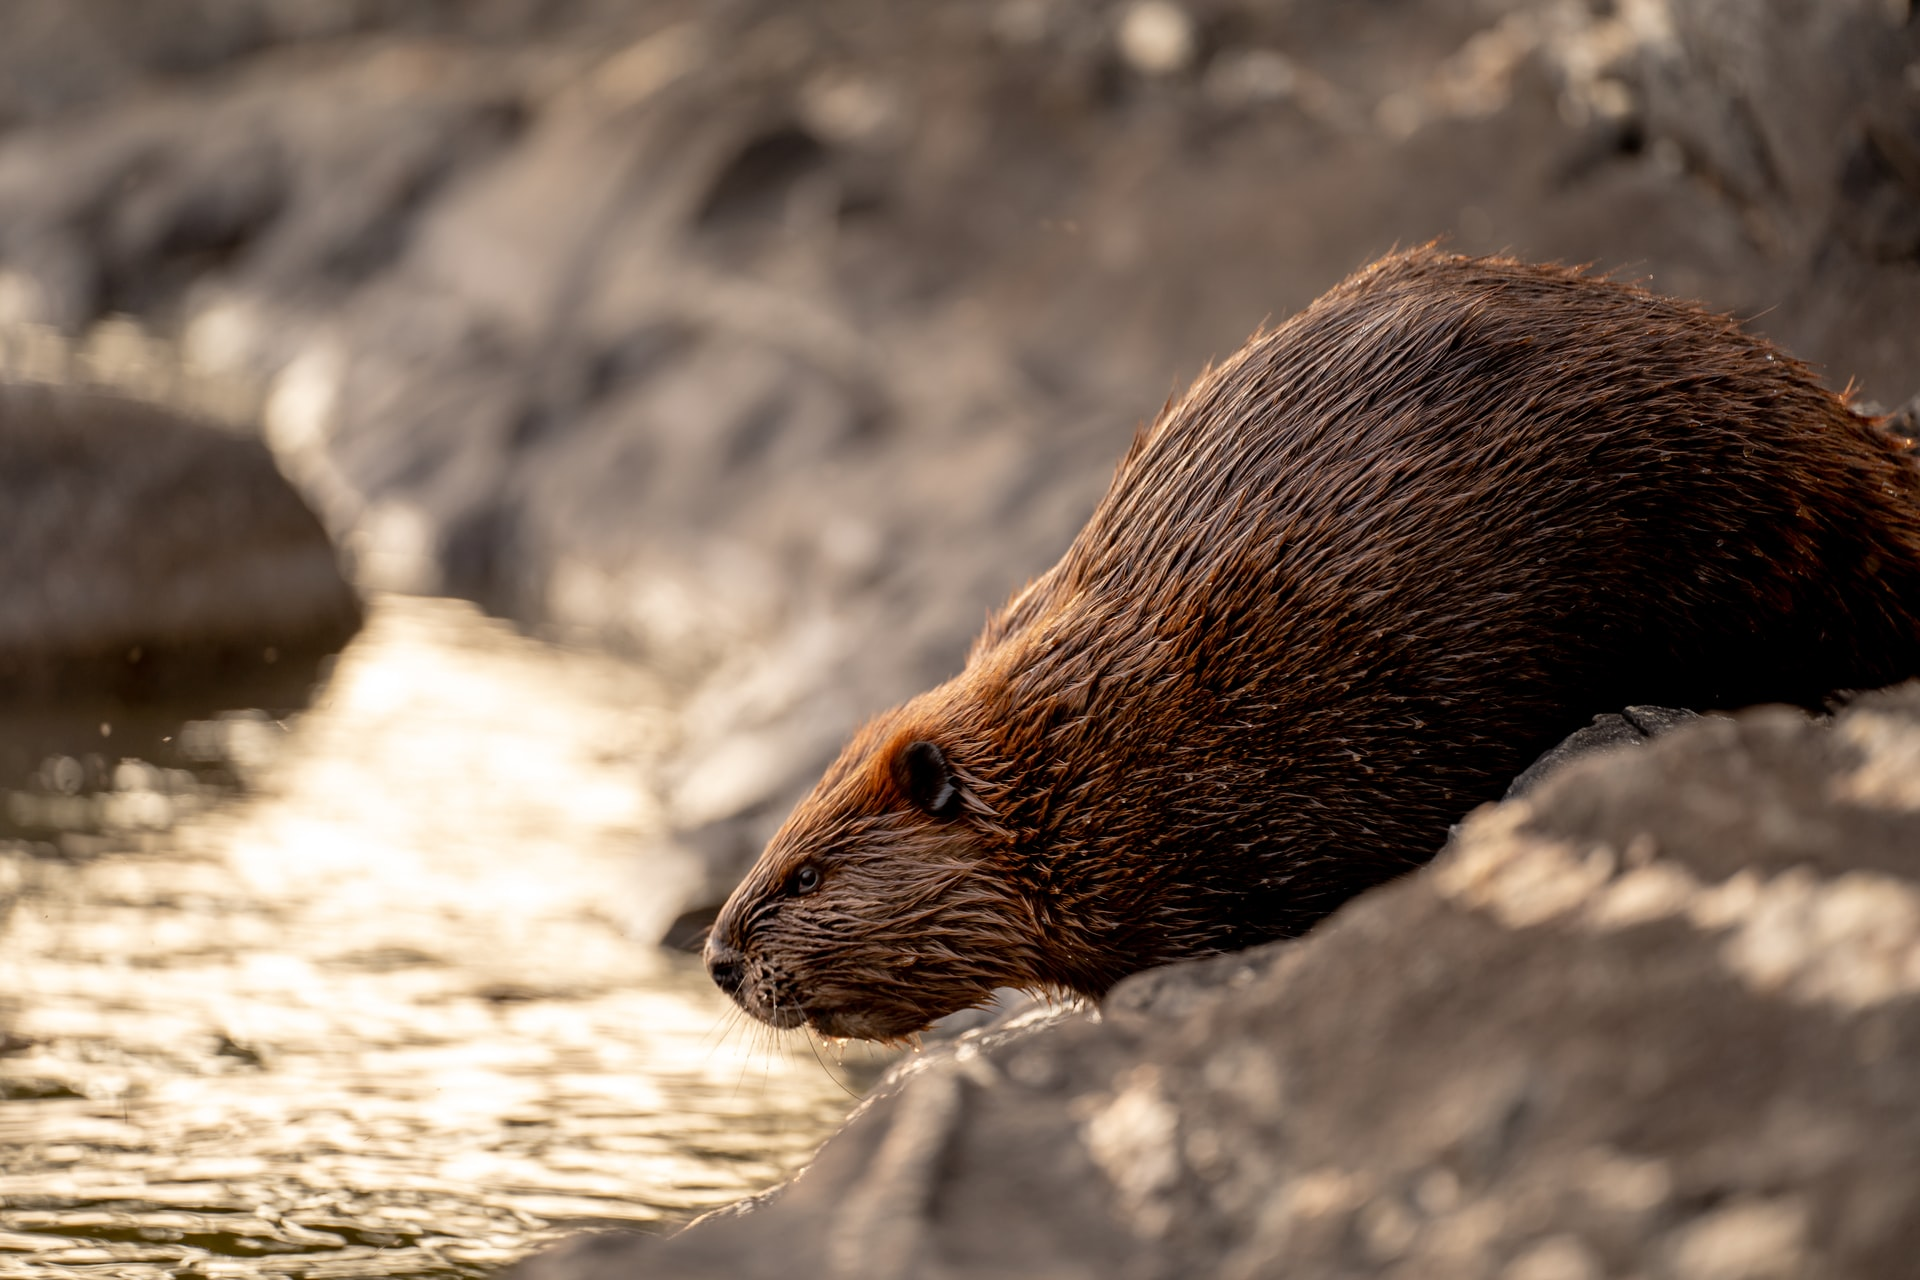 Hunting beaver: The pursuit that shaped our nation